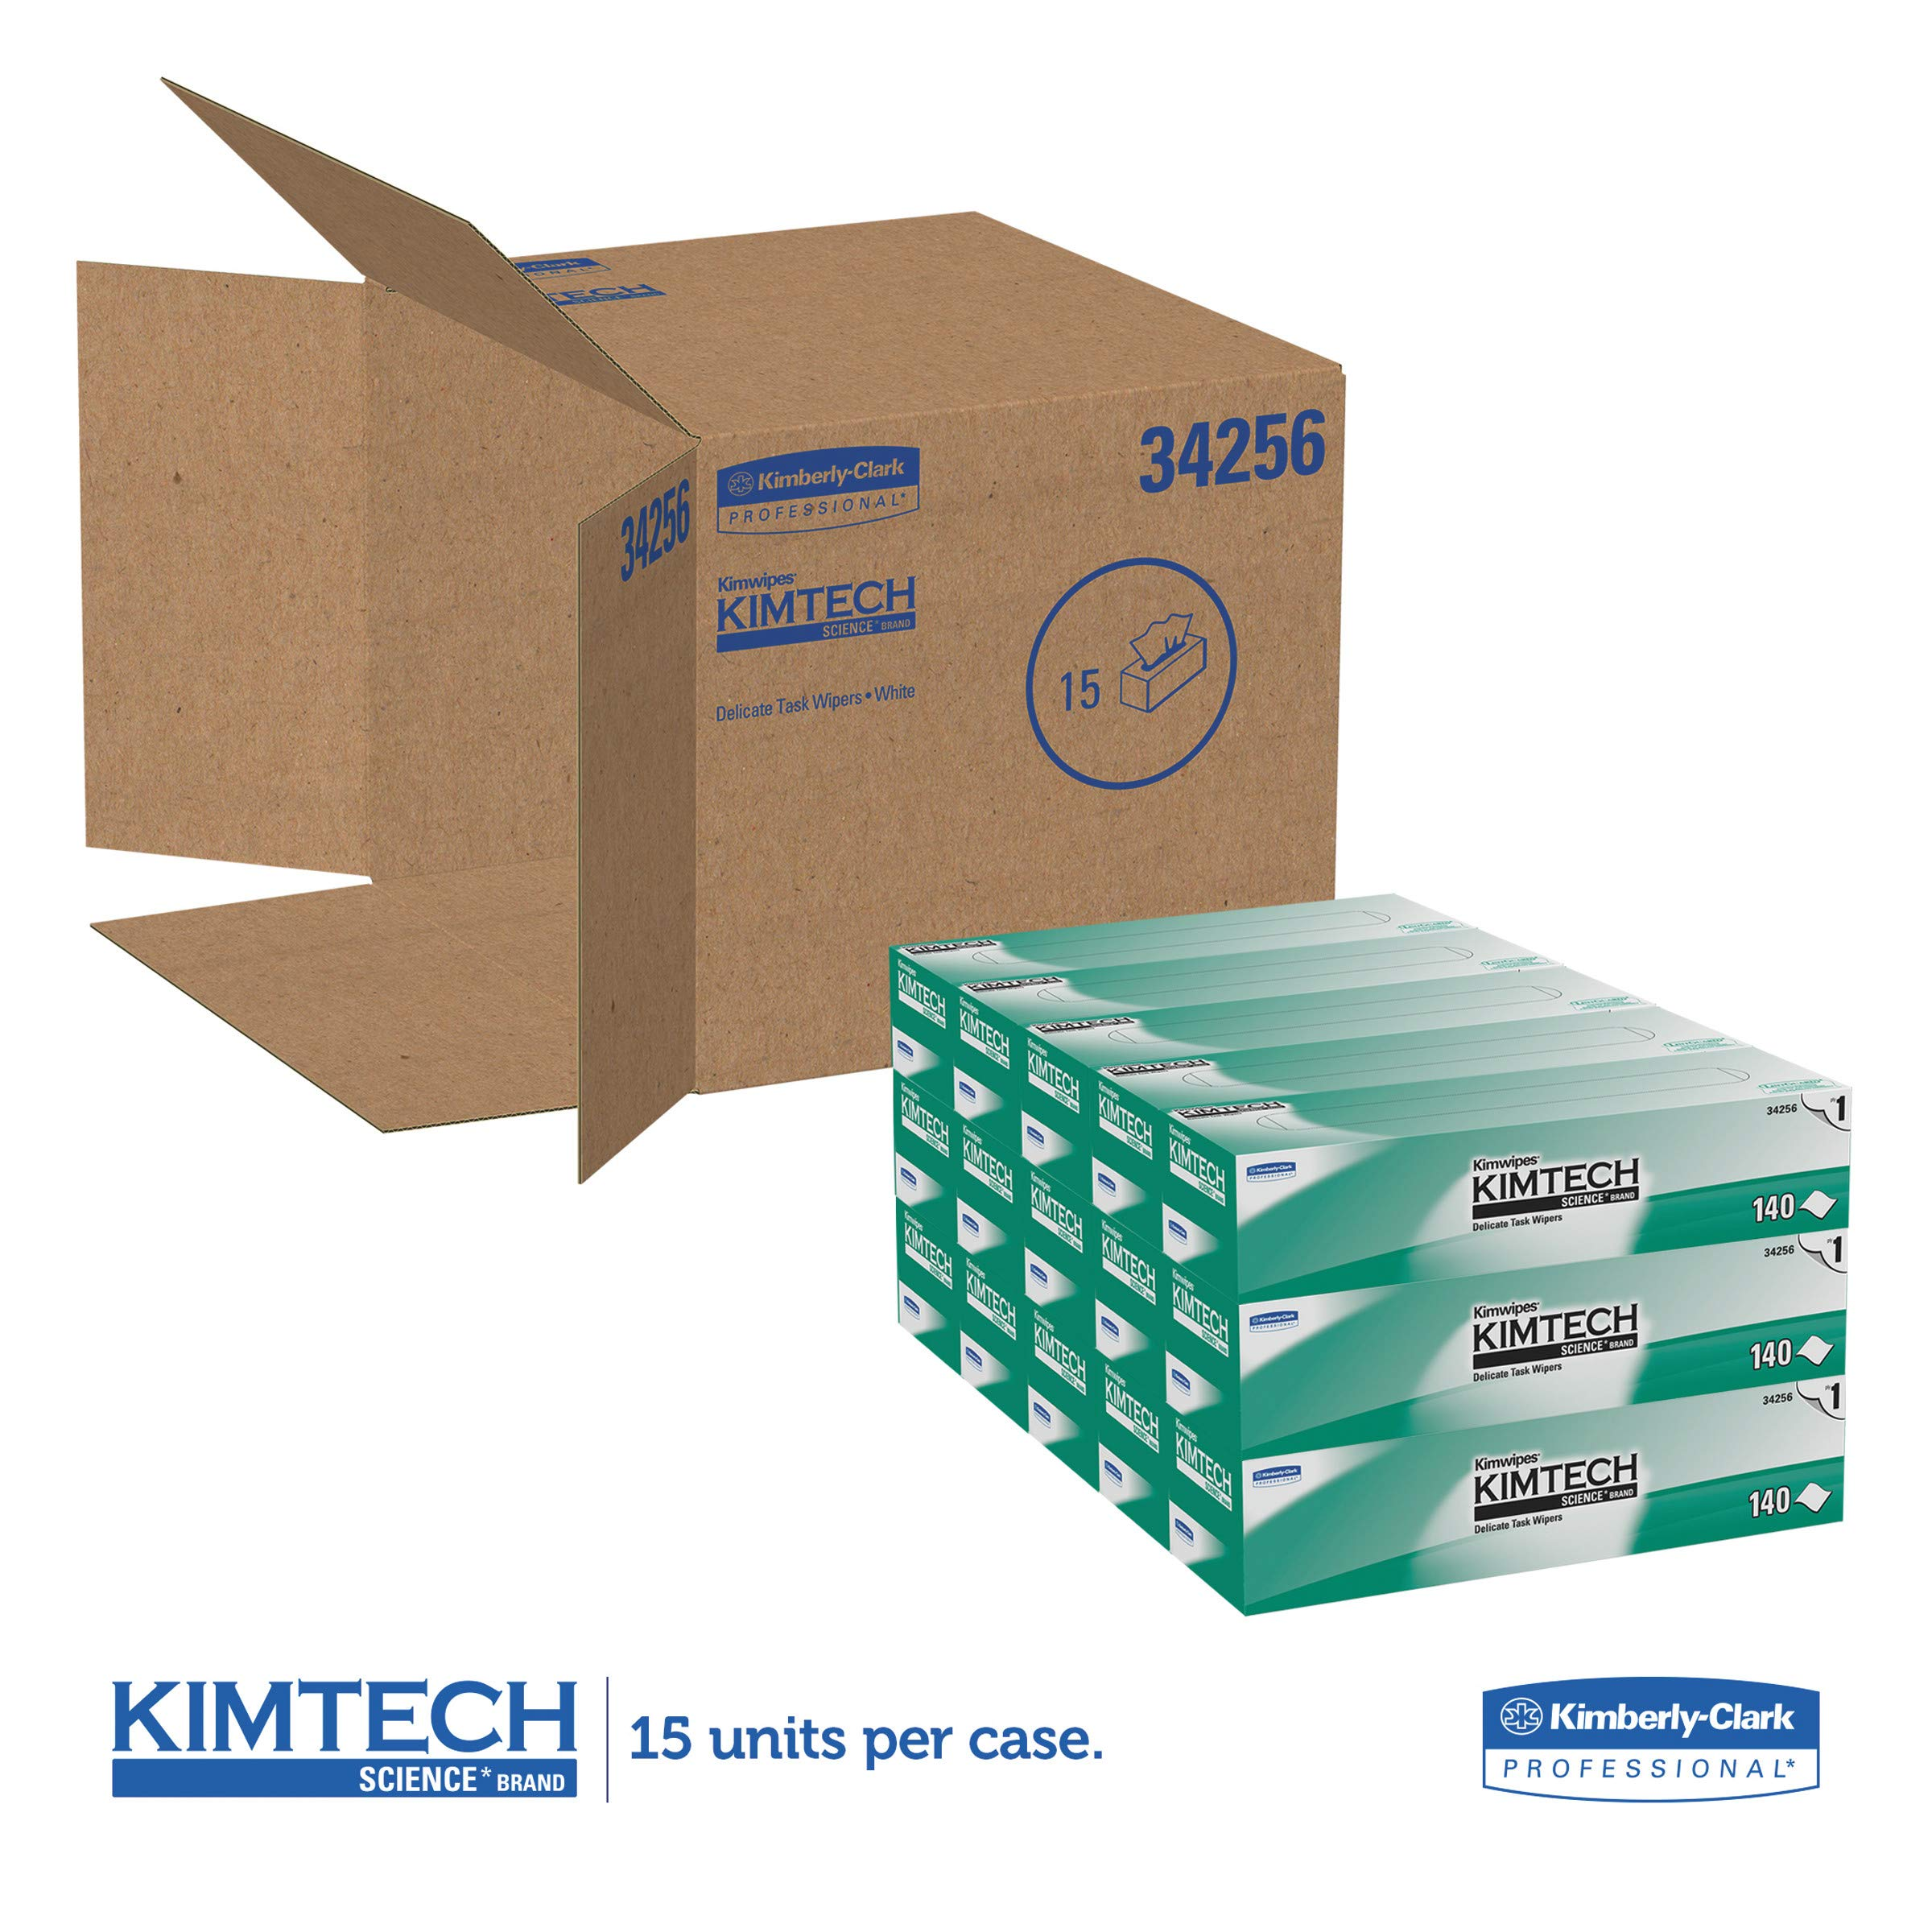 Kimtech 34256CT Kimwipes Delicate Task Wipers, 1-Ply, 14 7/10 x 16 3/5, 140 per Box (Case of 15 Boxes)